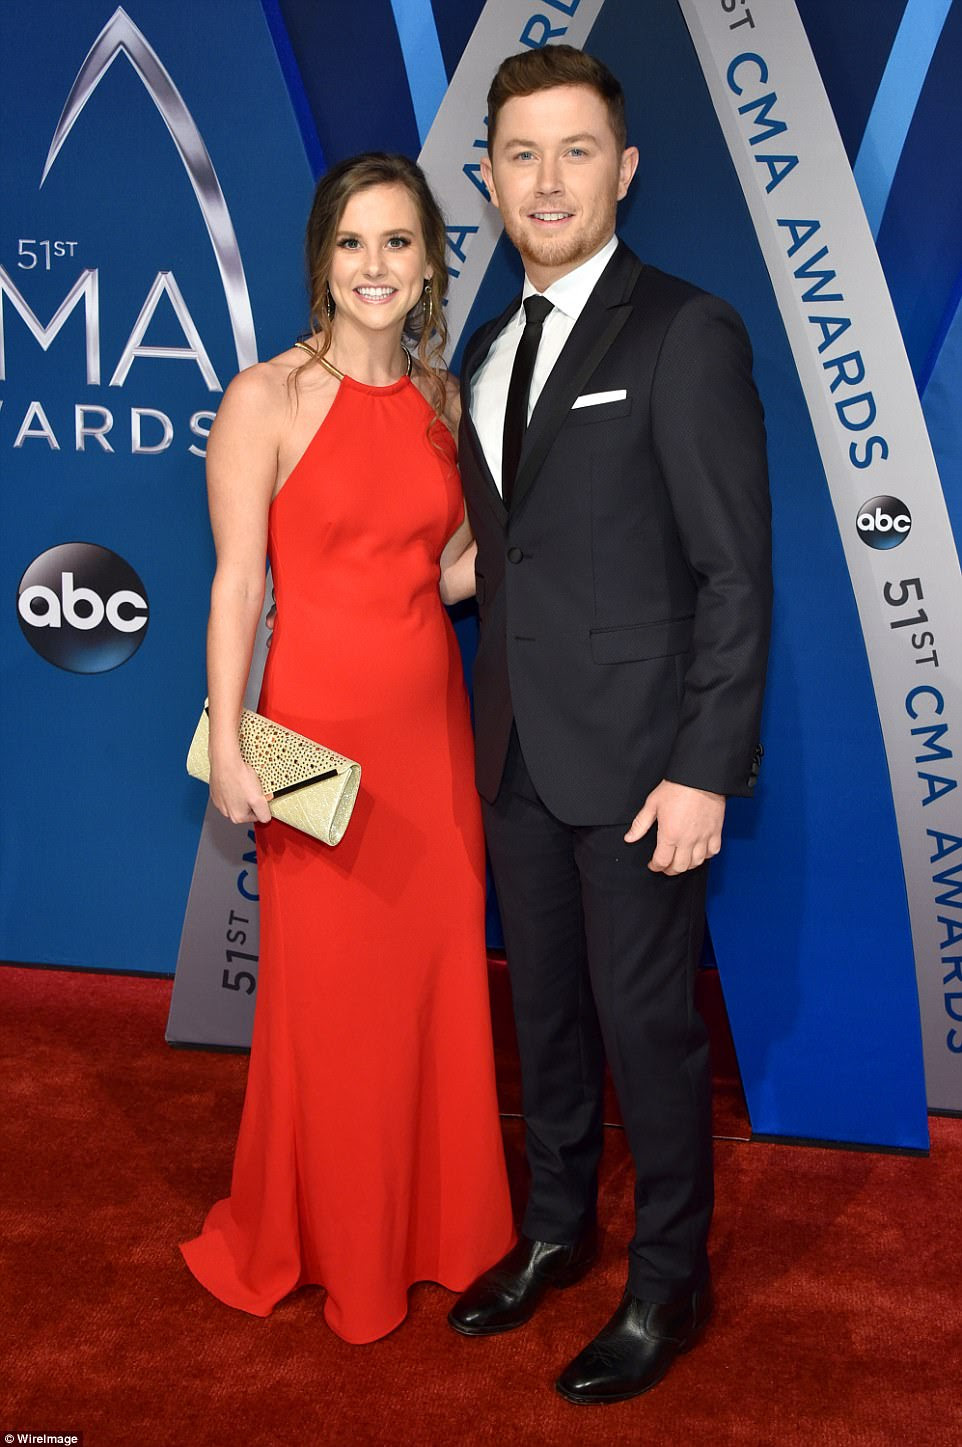 Date night! Scotty McCreery and his fiancee Gabi Dugal were styled to perfection for the big night